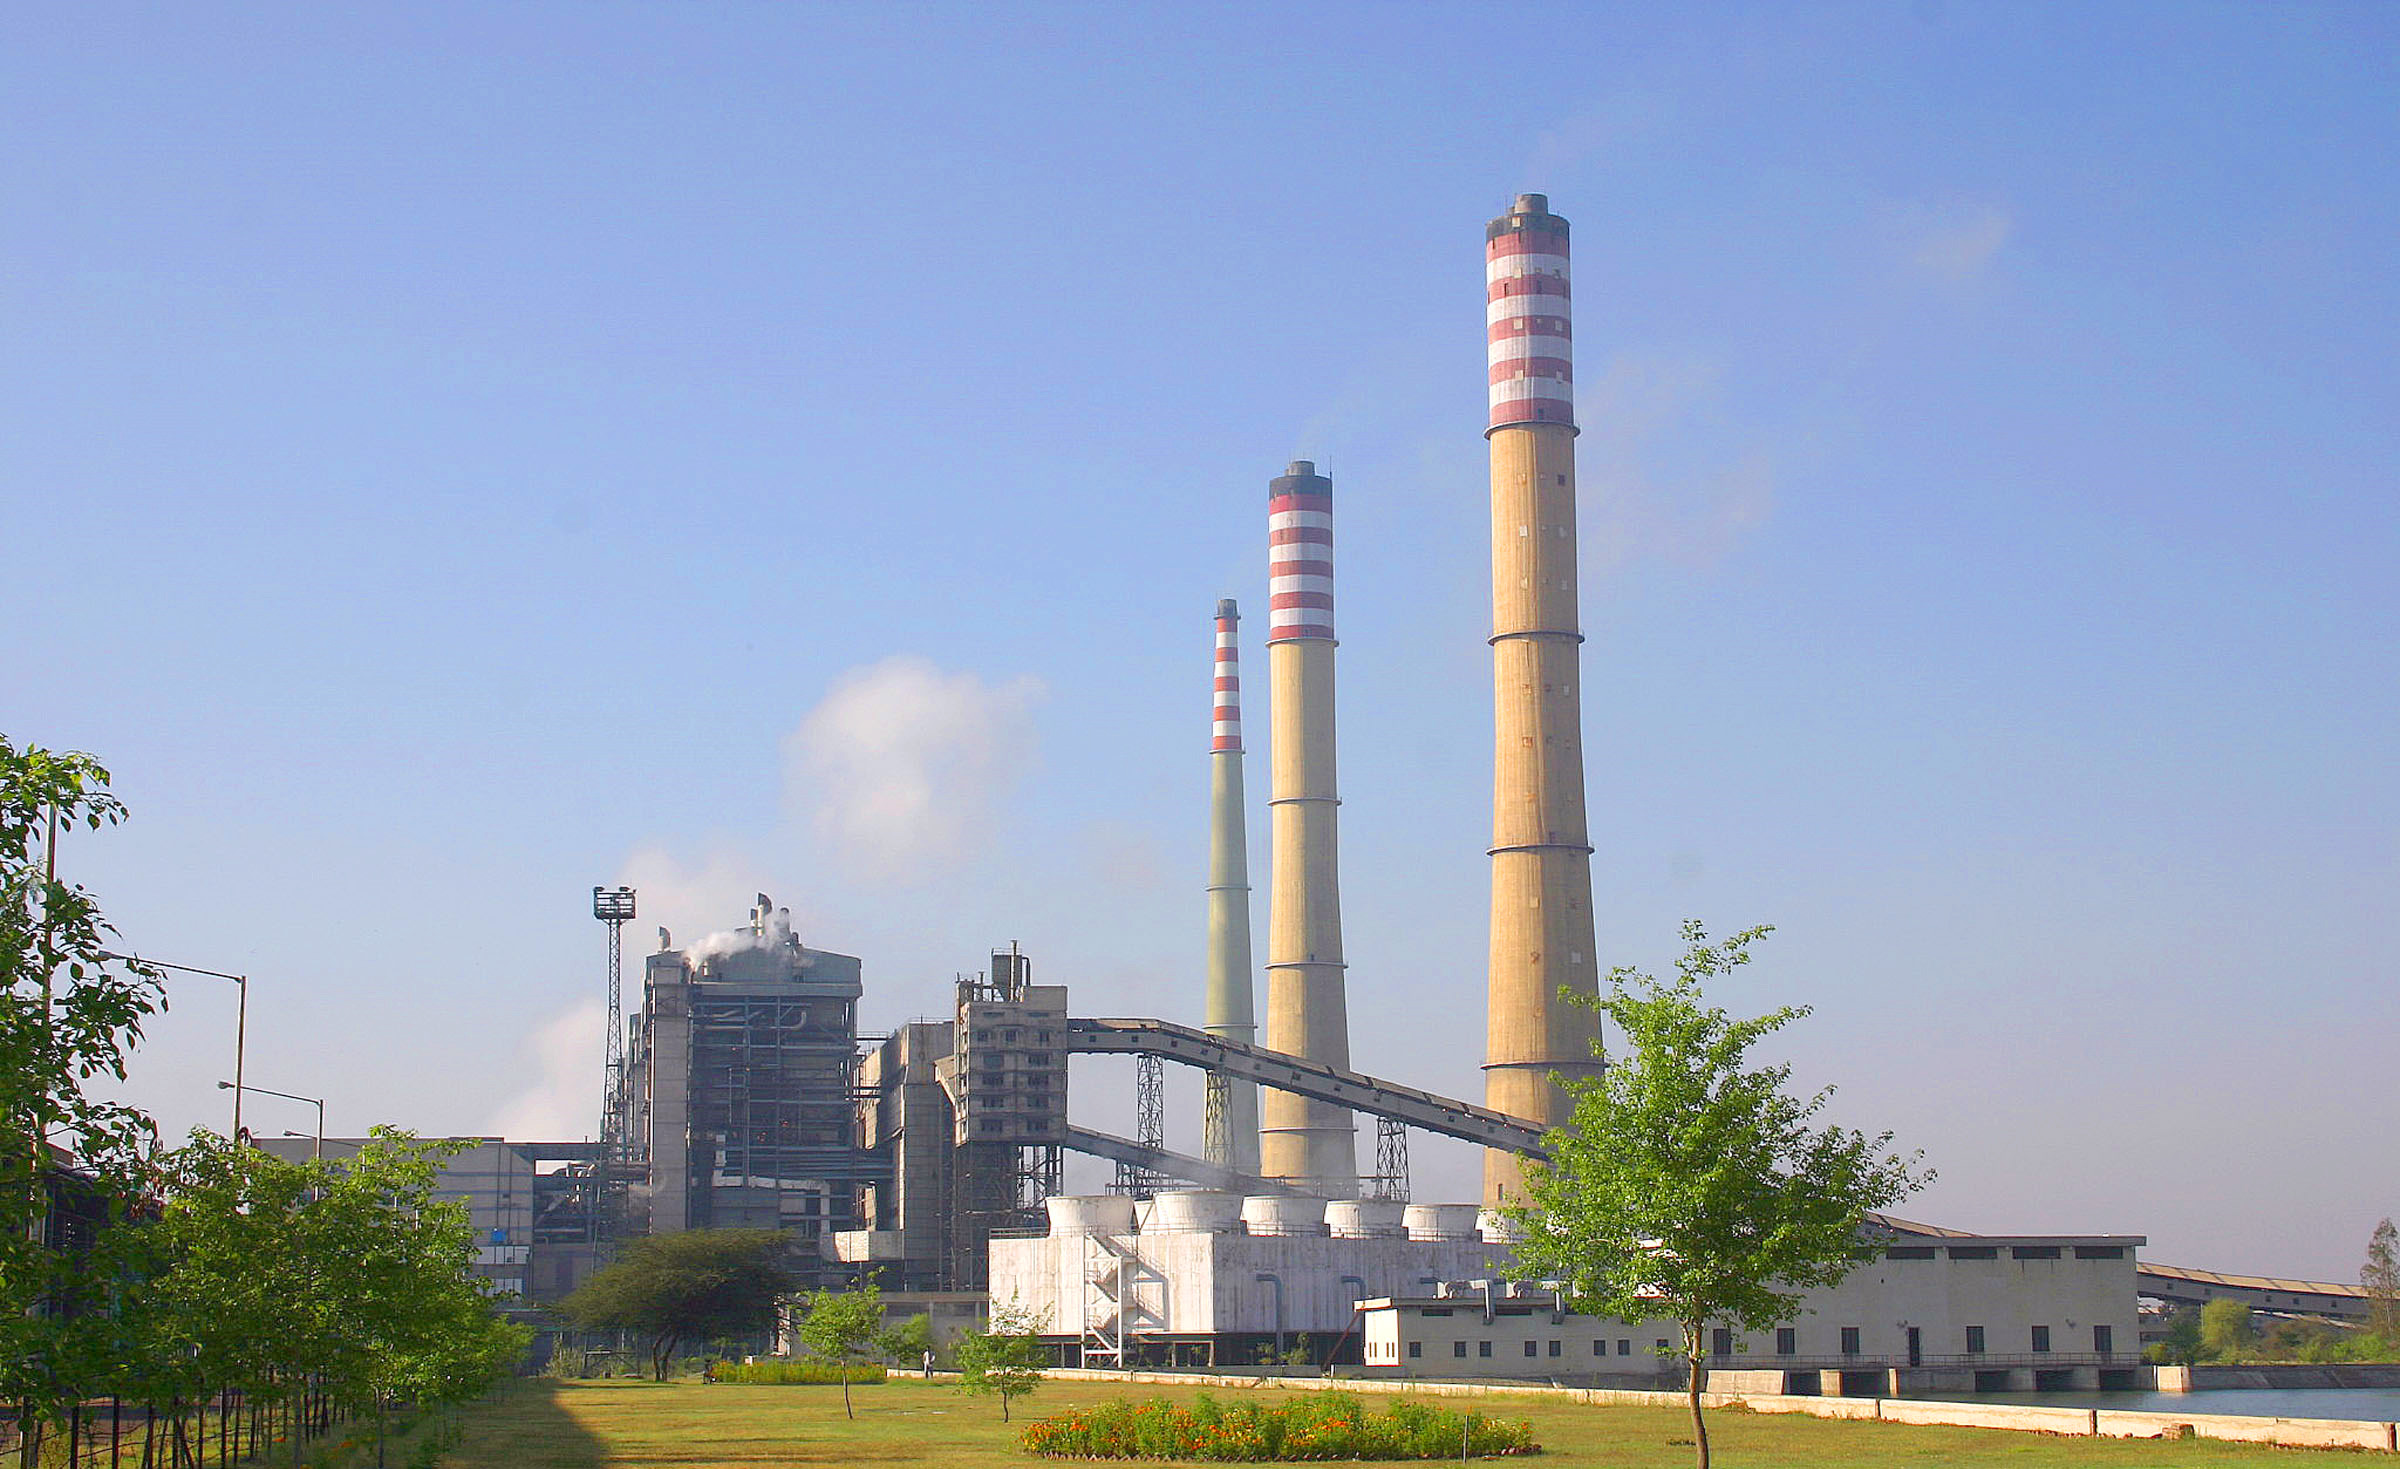 Investors Not Thrilled With Offers To Buy Homer City Coal Plant